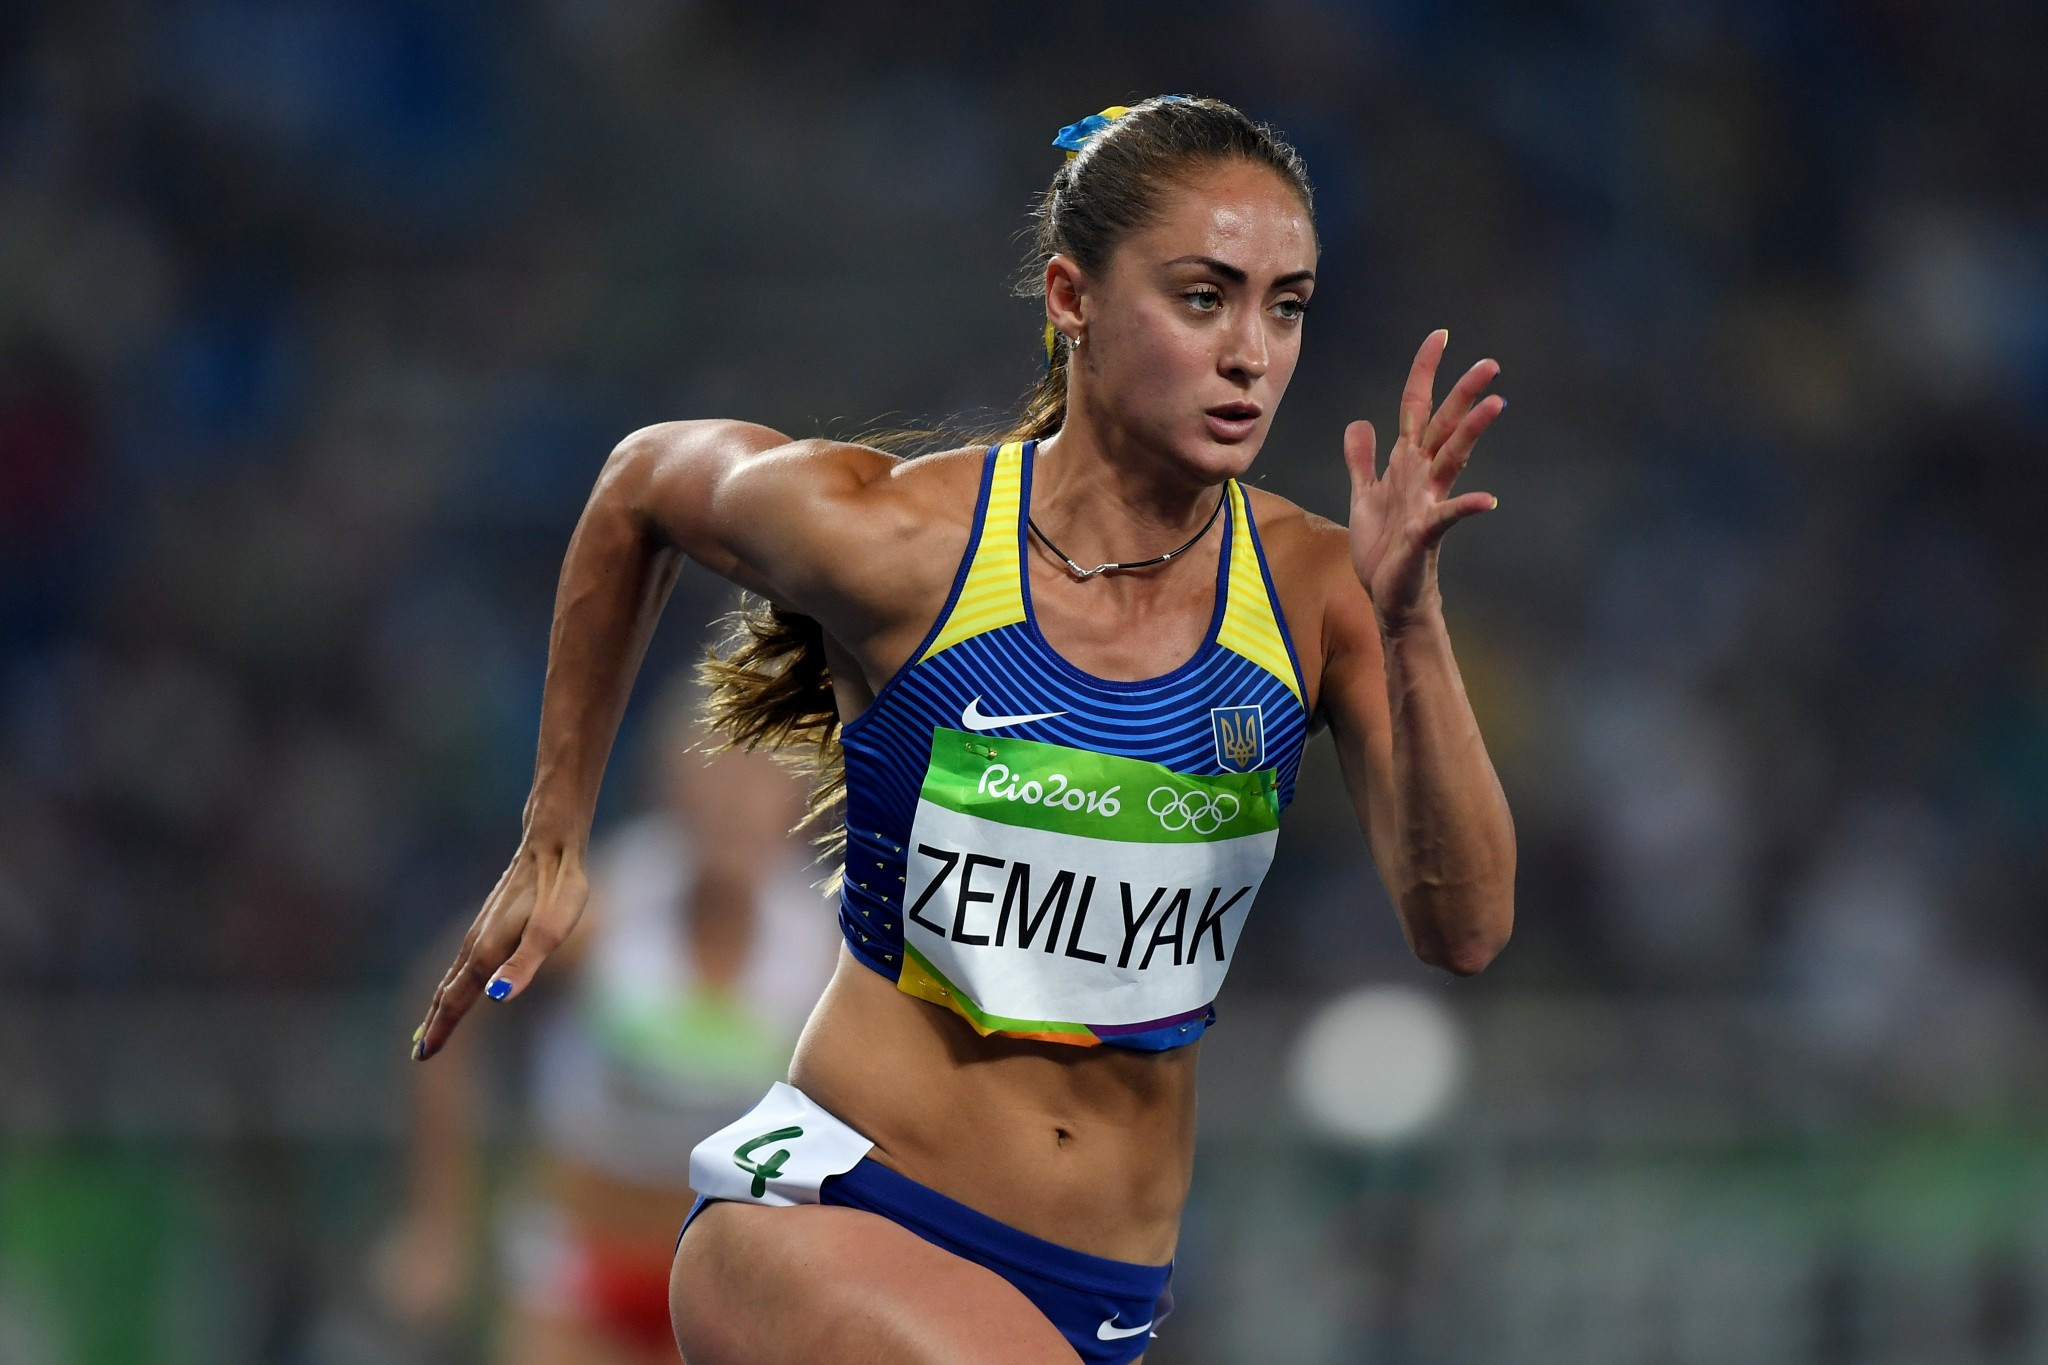 Ukraine's Olha Zemlyak pictured competing in the 400 metres at last year's Olympic Games in Rio de Janeiro ©Getty Images